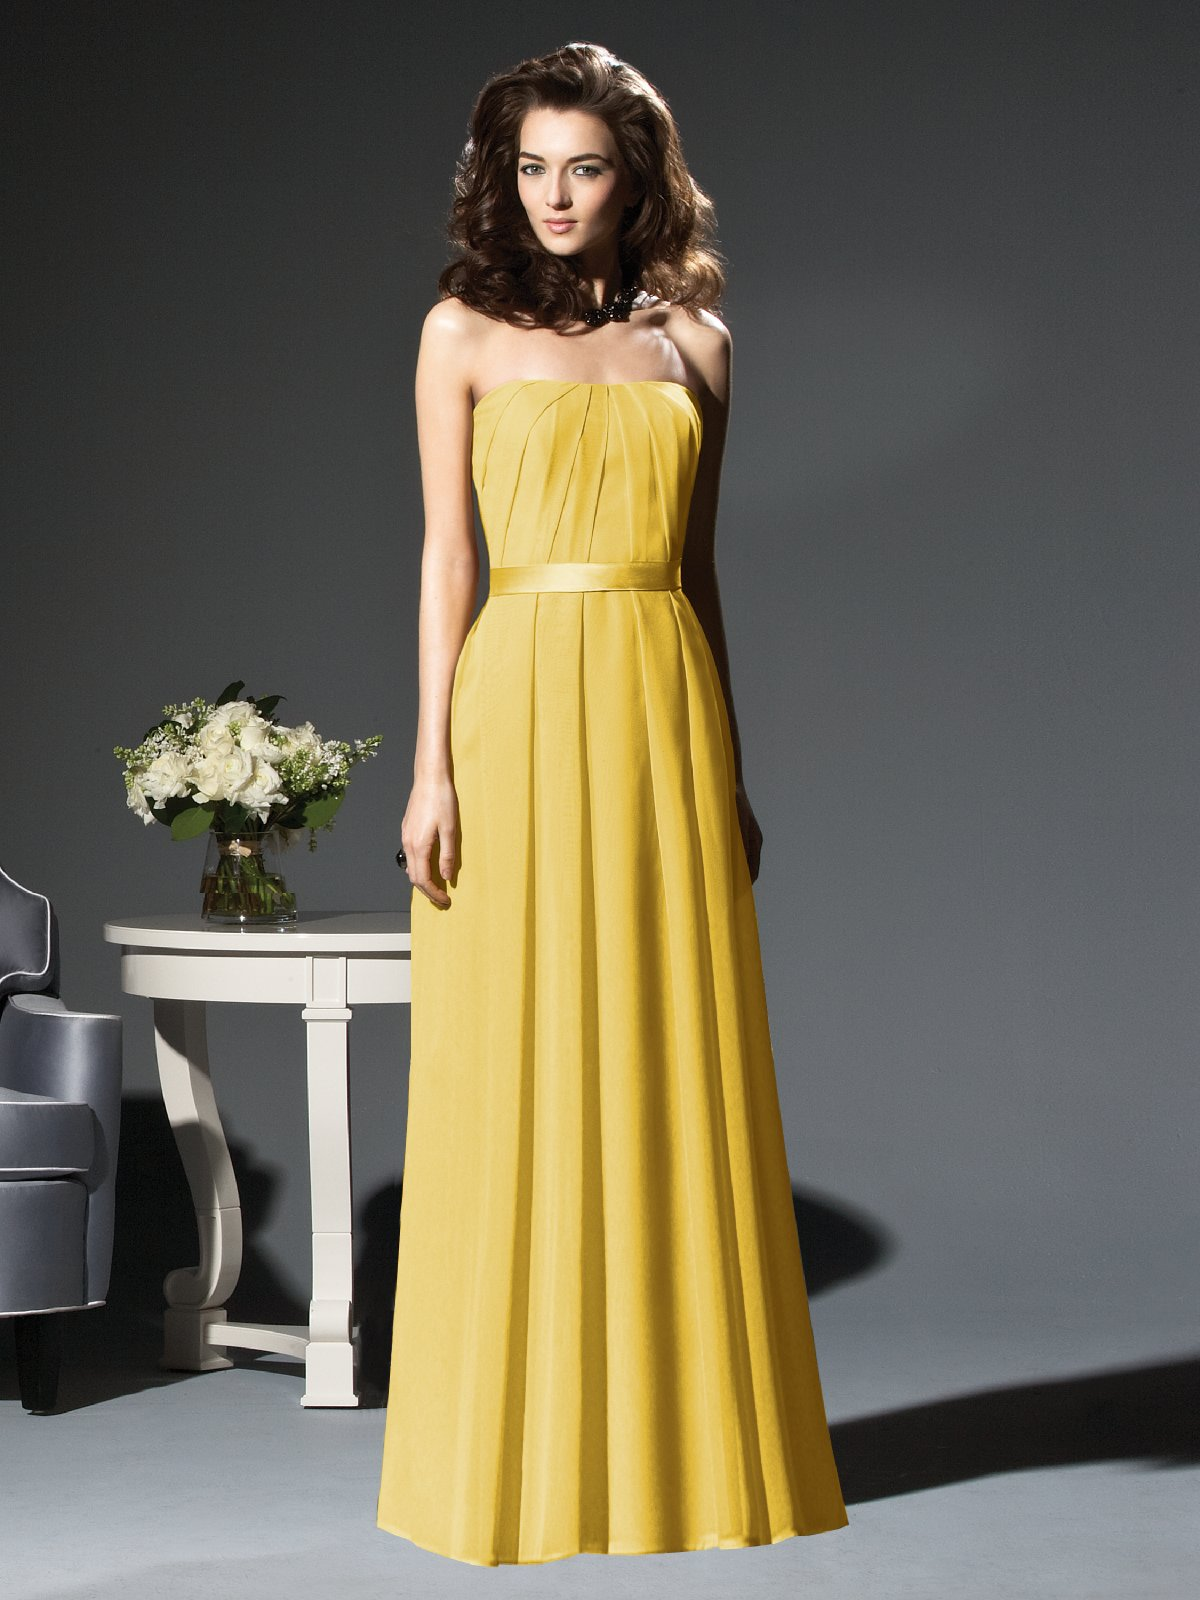 Yellow A Line Strapless Zipper Floor Length Pleated Chiffon Prom Dresses With Belt